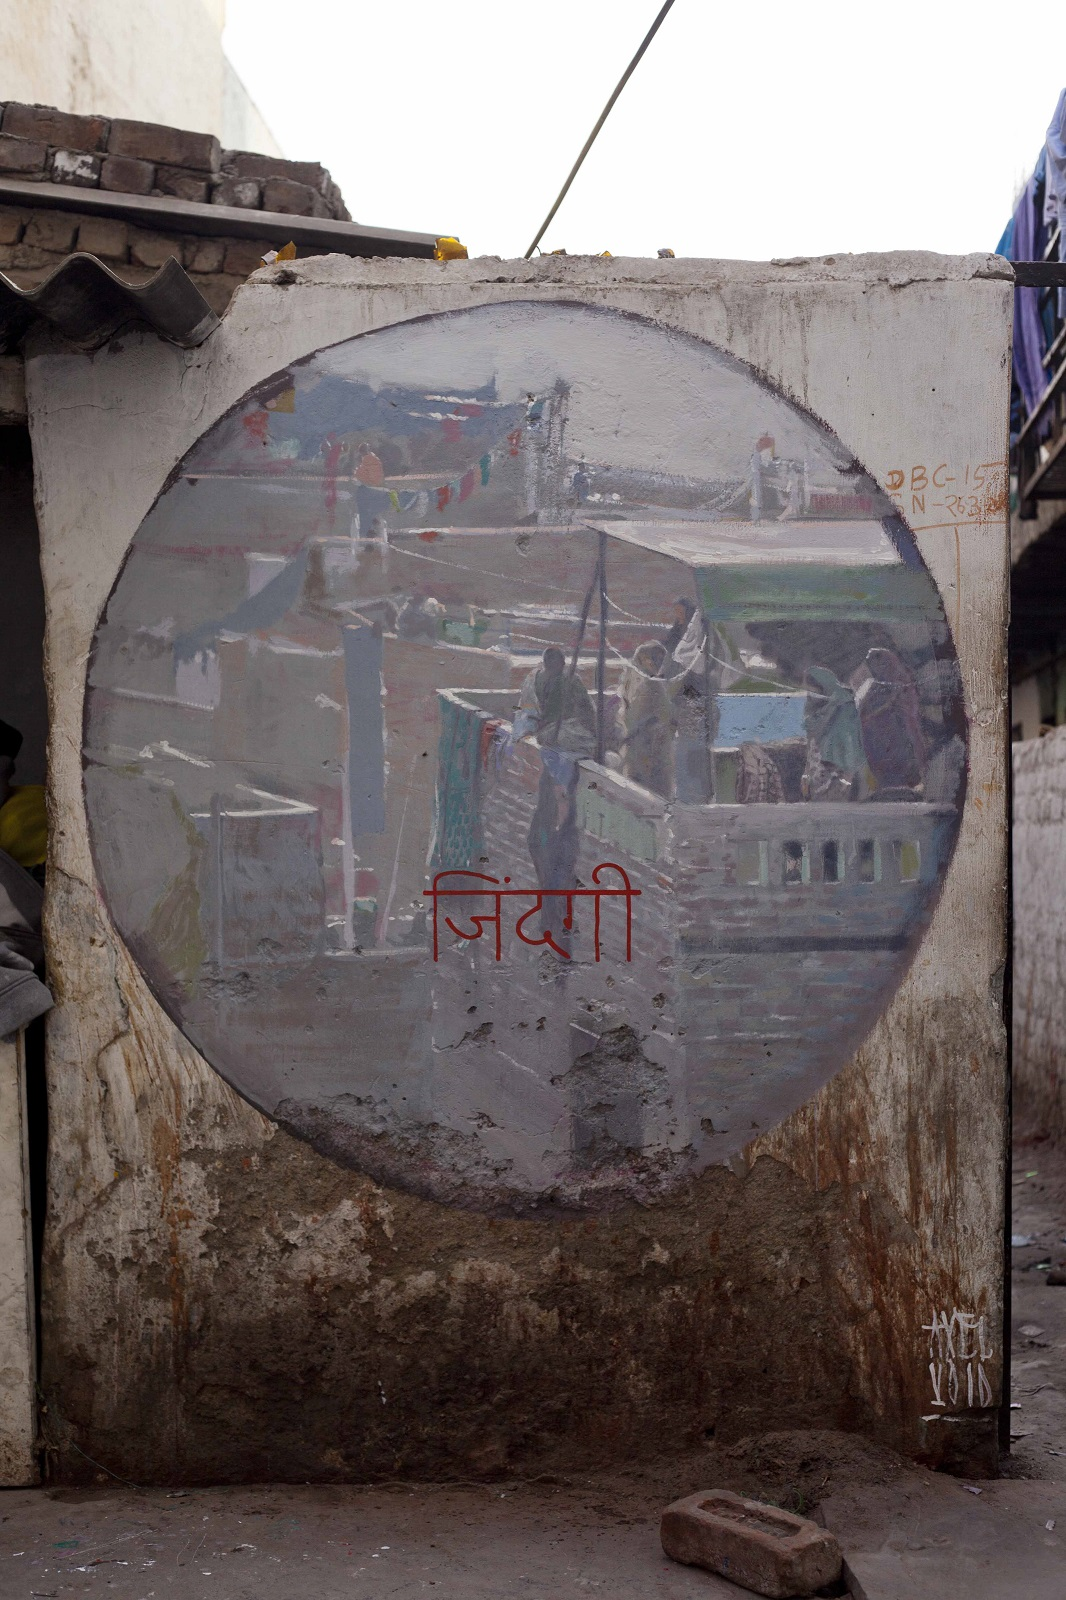 axel-void-new-mural-in-delhi-india-11